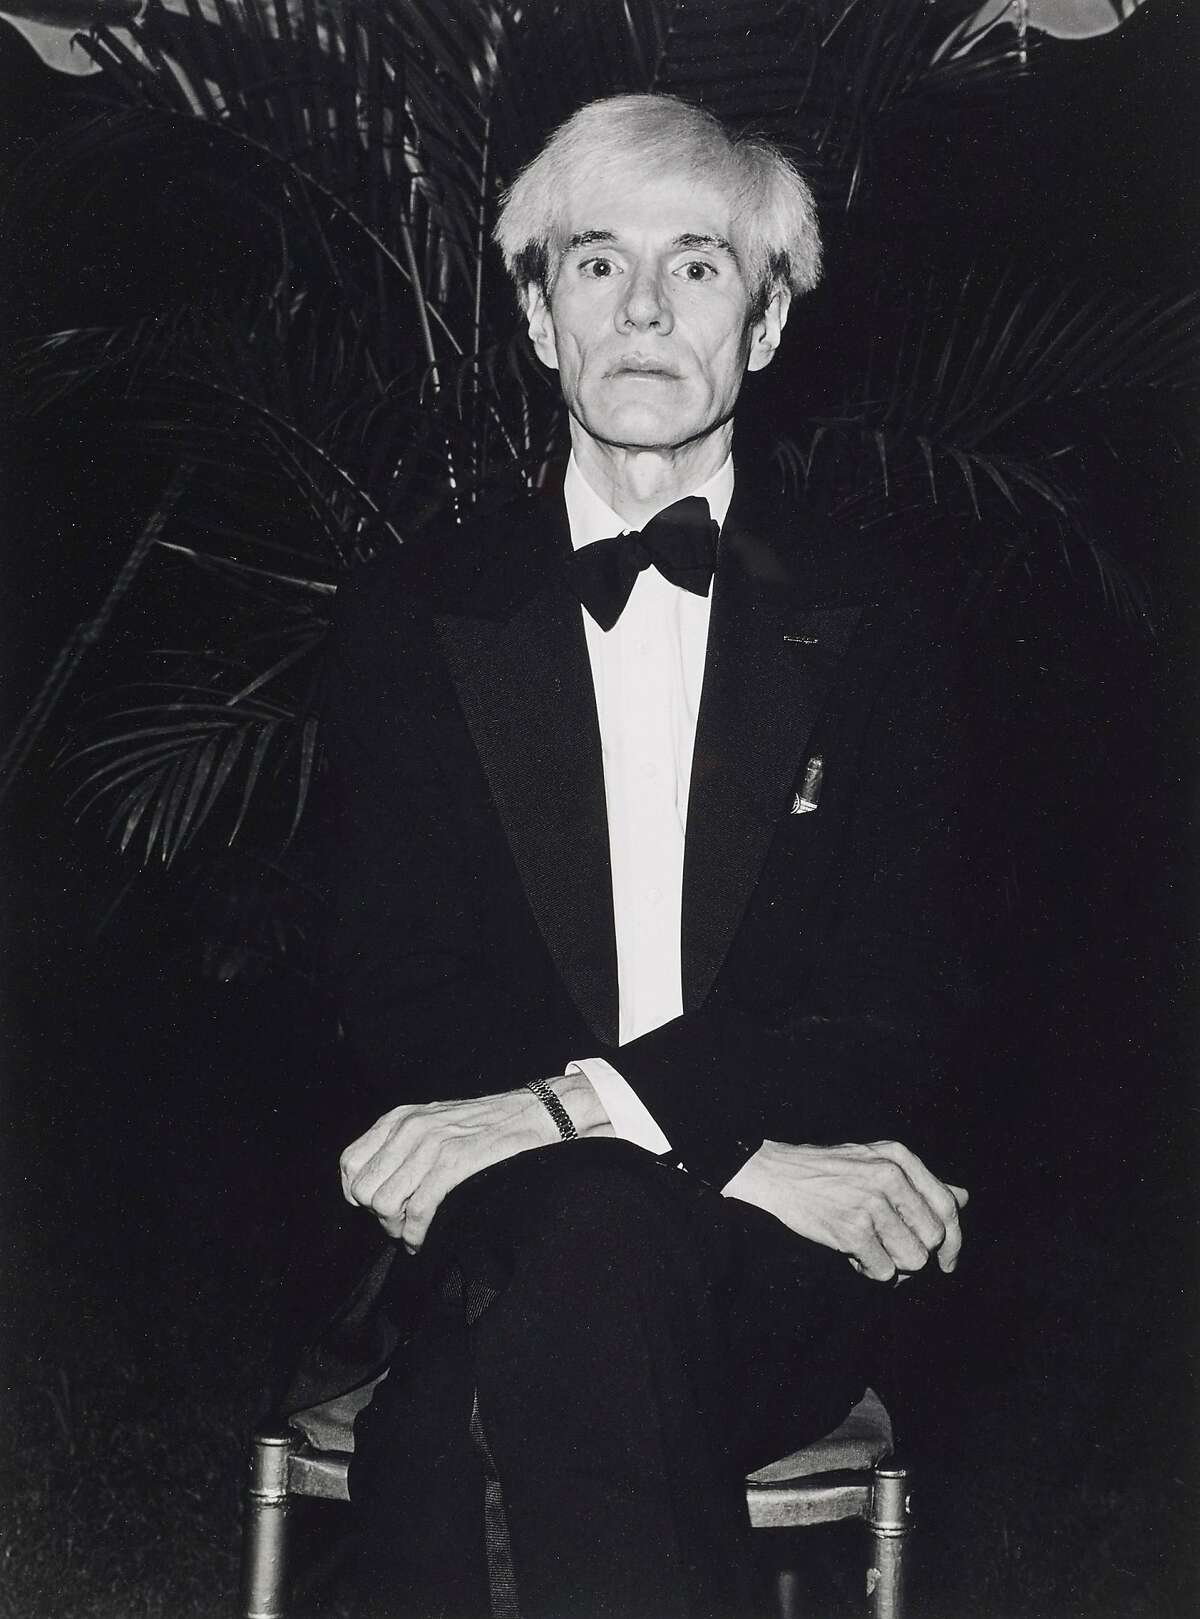 """Sal Lopes' 1981 photograph of Andy Warhol is one of the works from the collection of Robert Johnson on view in """"Catch �Catch and Release IV"""" at Petaluma's Ice House Gallery."""